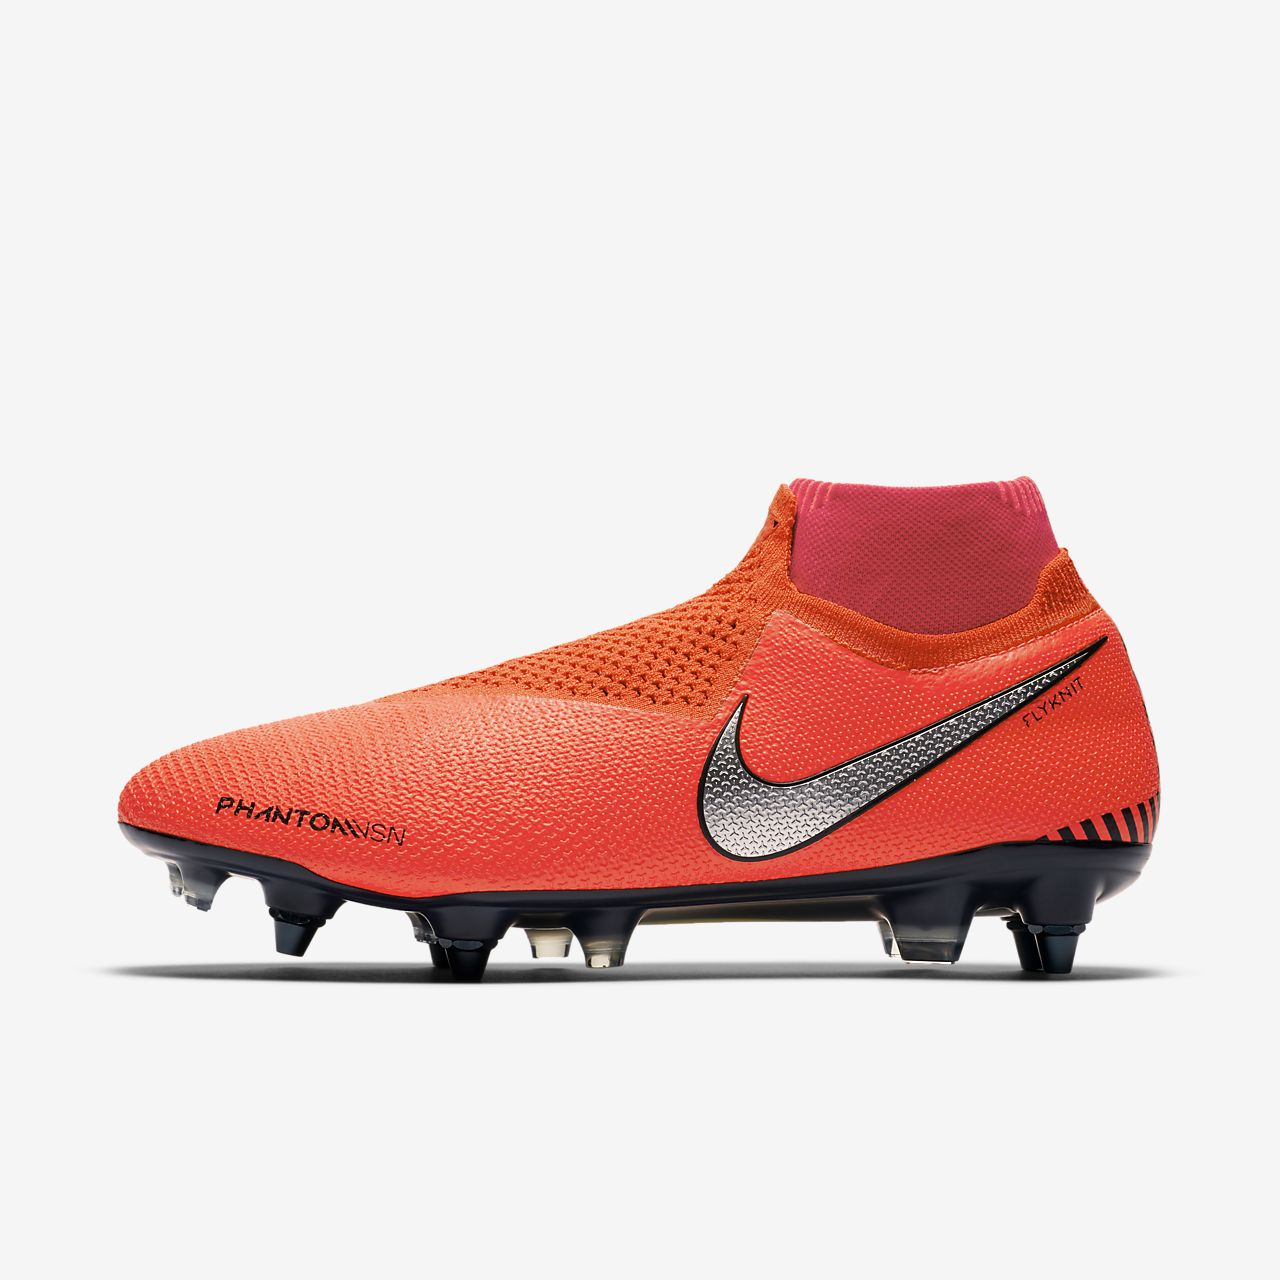 buy online b6cad 259b5 Nike Phantom Vision Elite Dynamic Fit Anti-Clog SG-PRO Football Boot ...